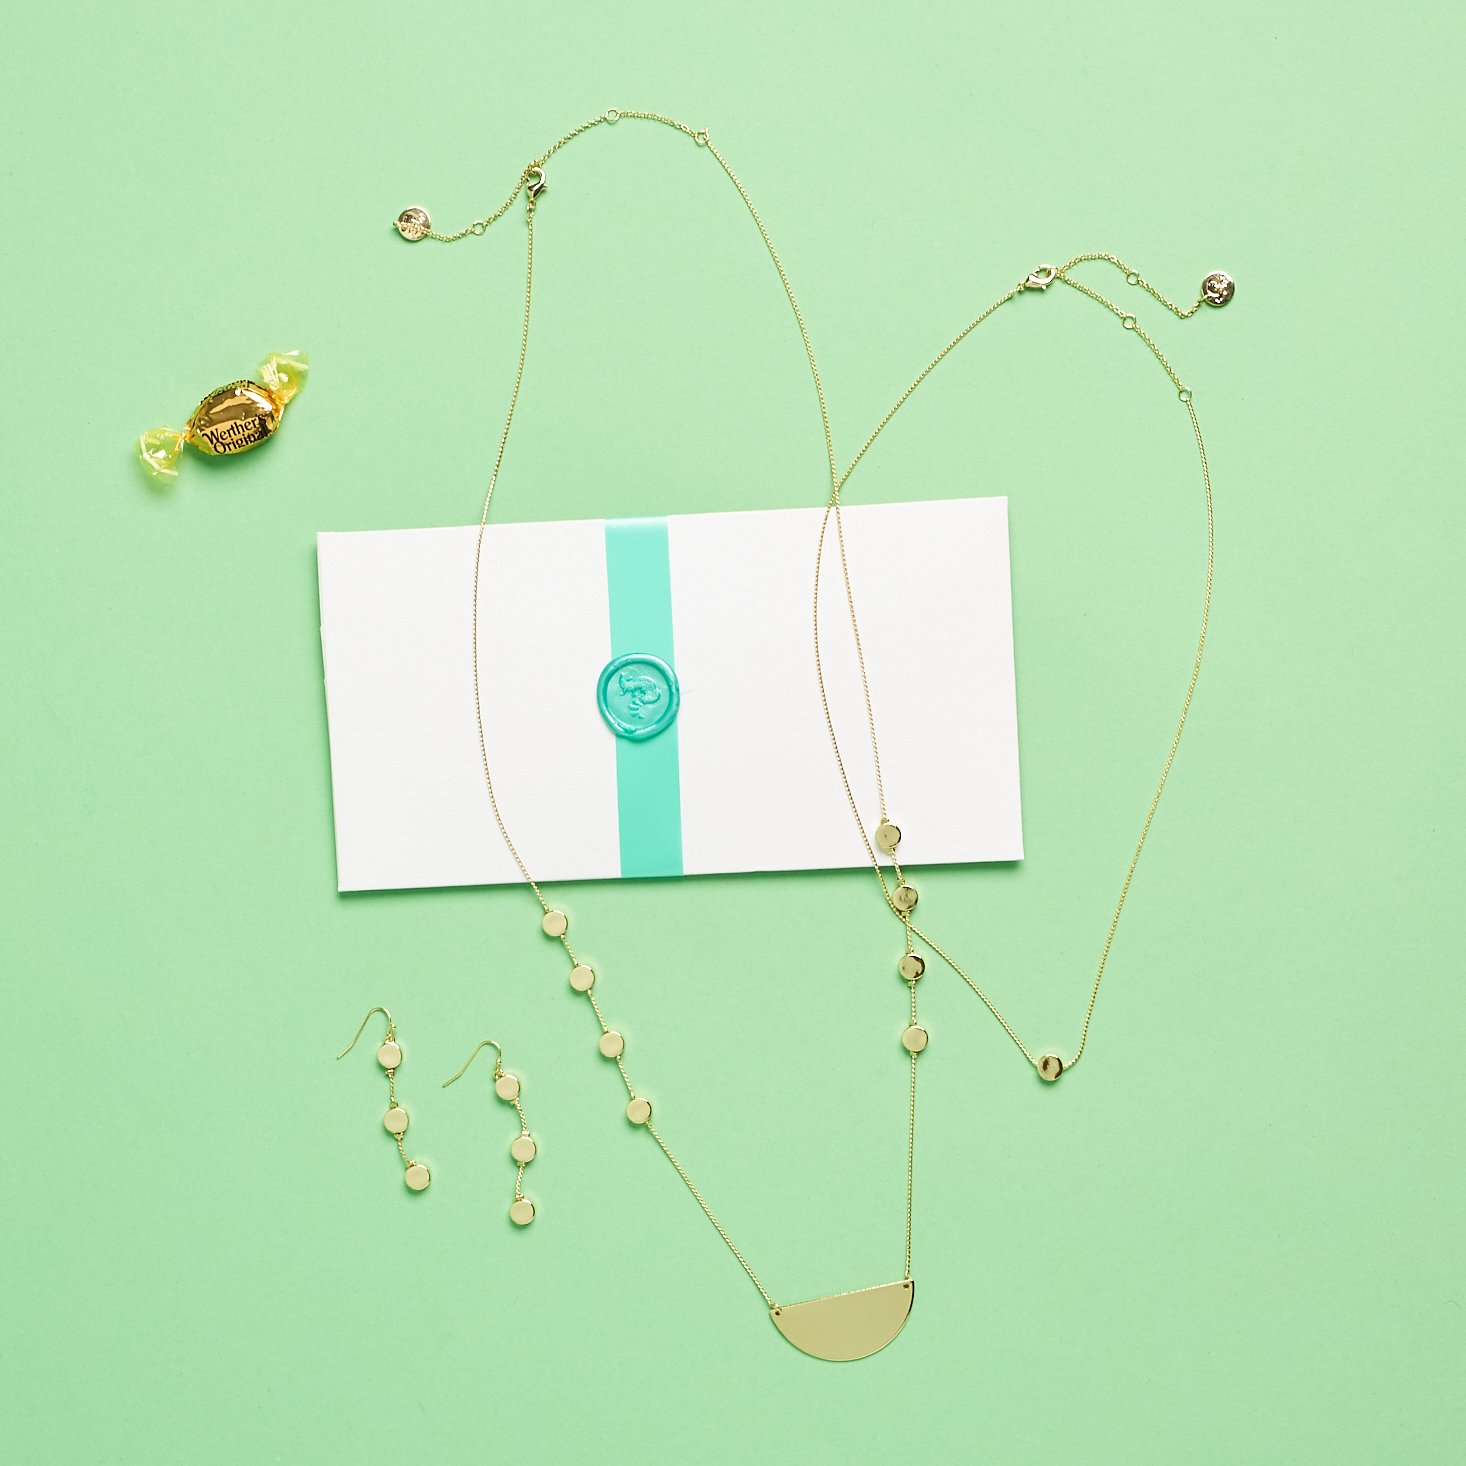 mintMONGOOSE Jewelry Subscription Review – March 2021